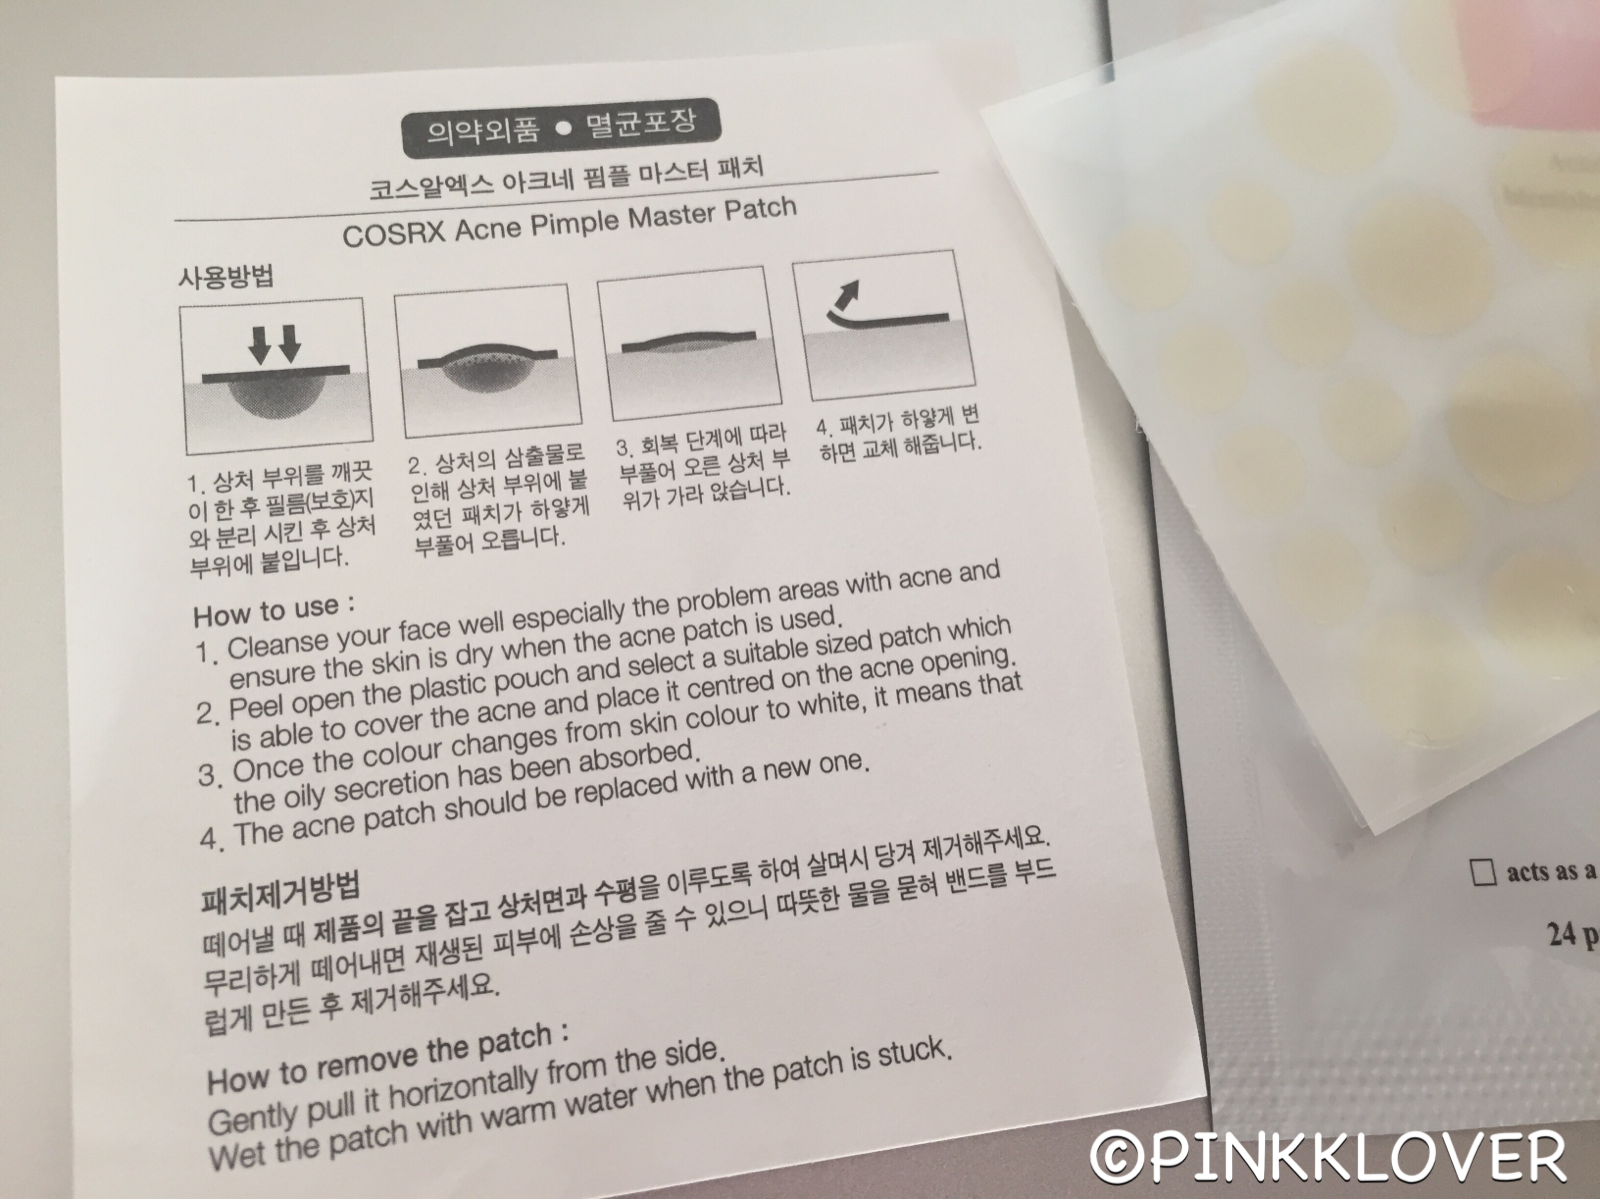 Acne Pimple Master Patch by cosrx #17